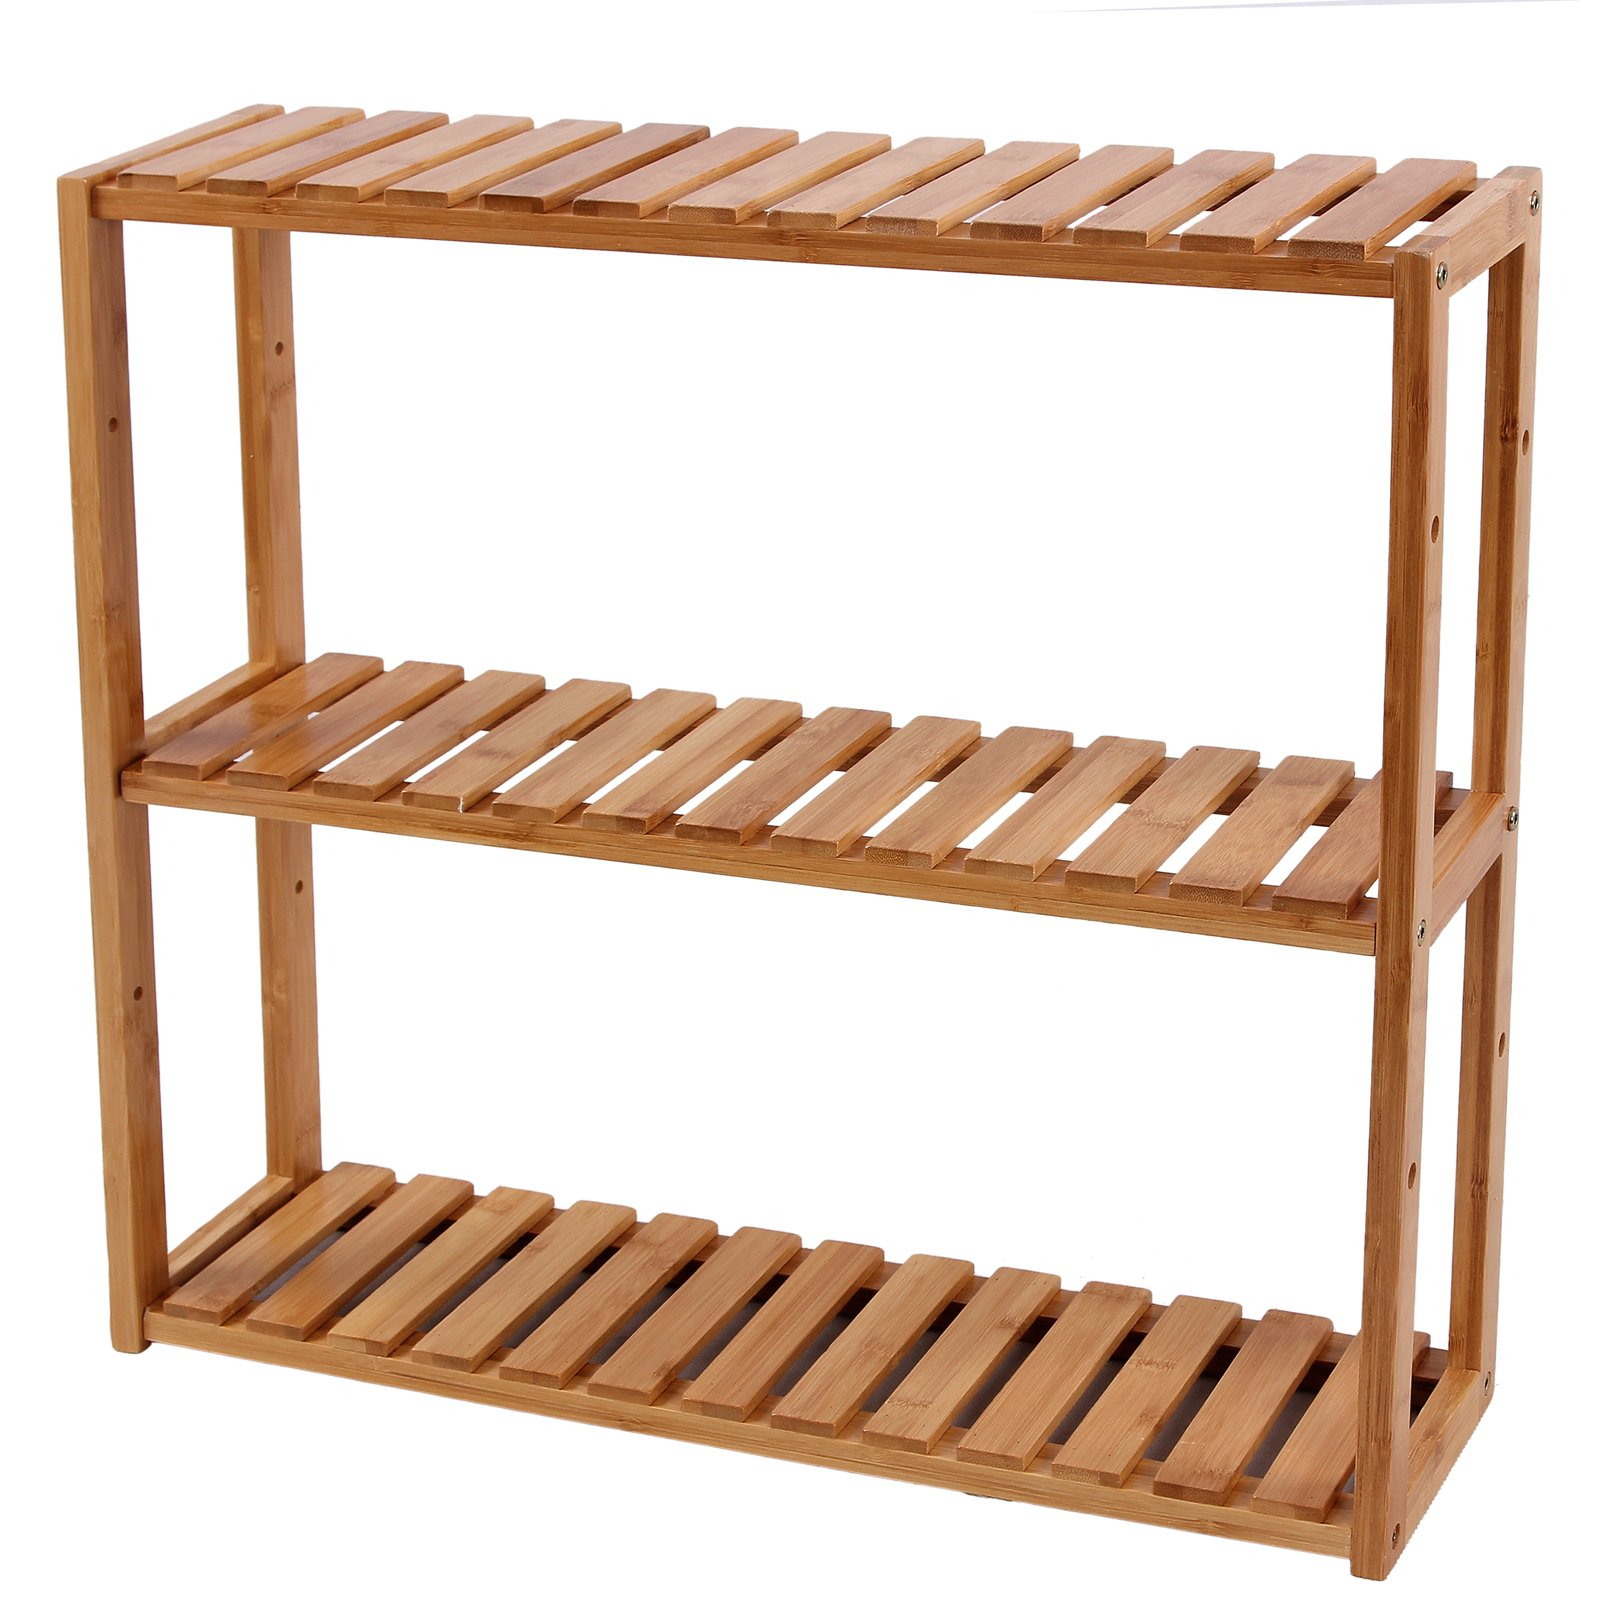 SONGMICS Adjustable Slim Shelf Rack Multifunctional Bathroom Kitchen Living Room Holder 3-Tier Utility Storage Shelf Bamboo UBCB13Y